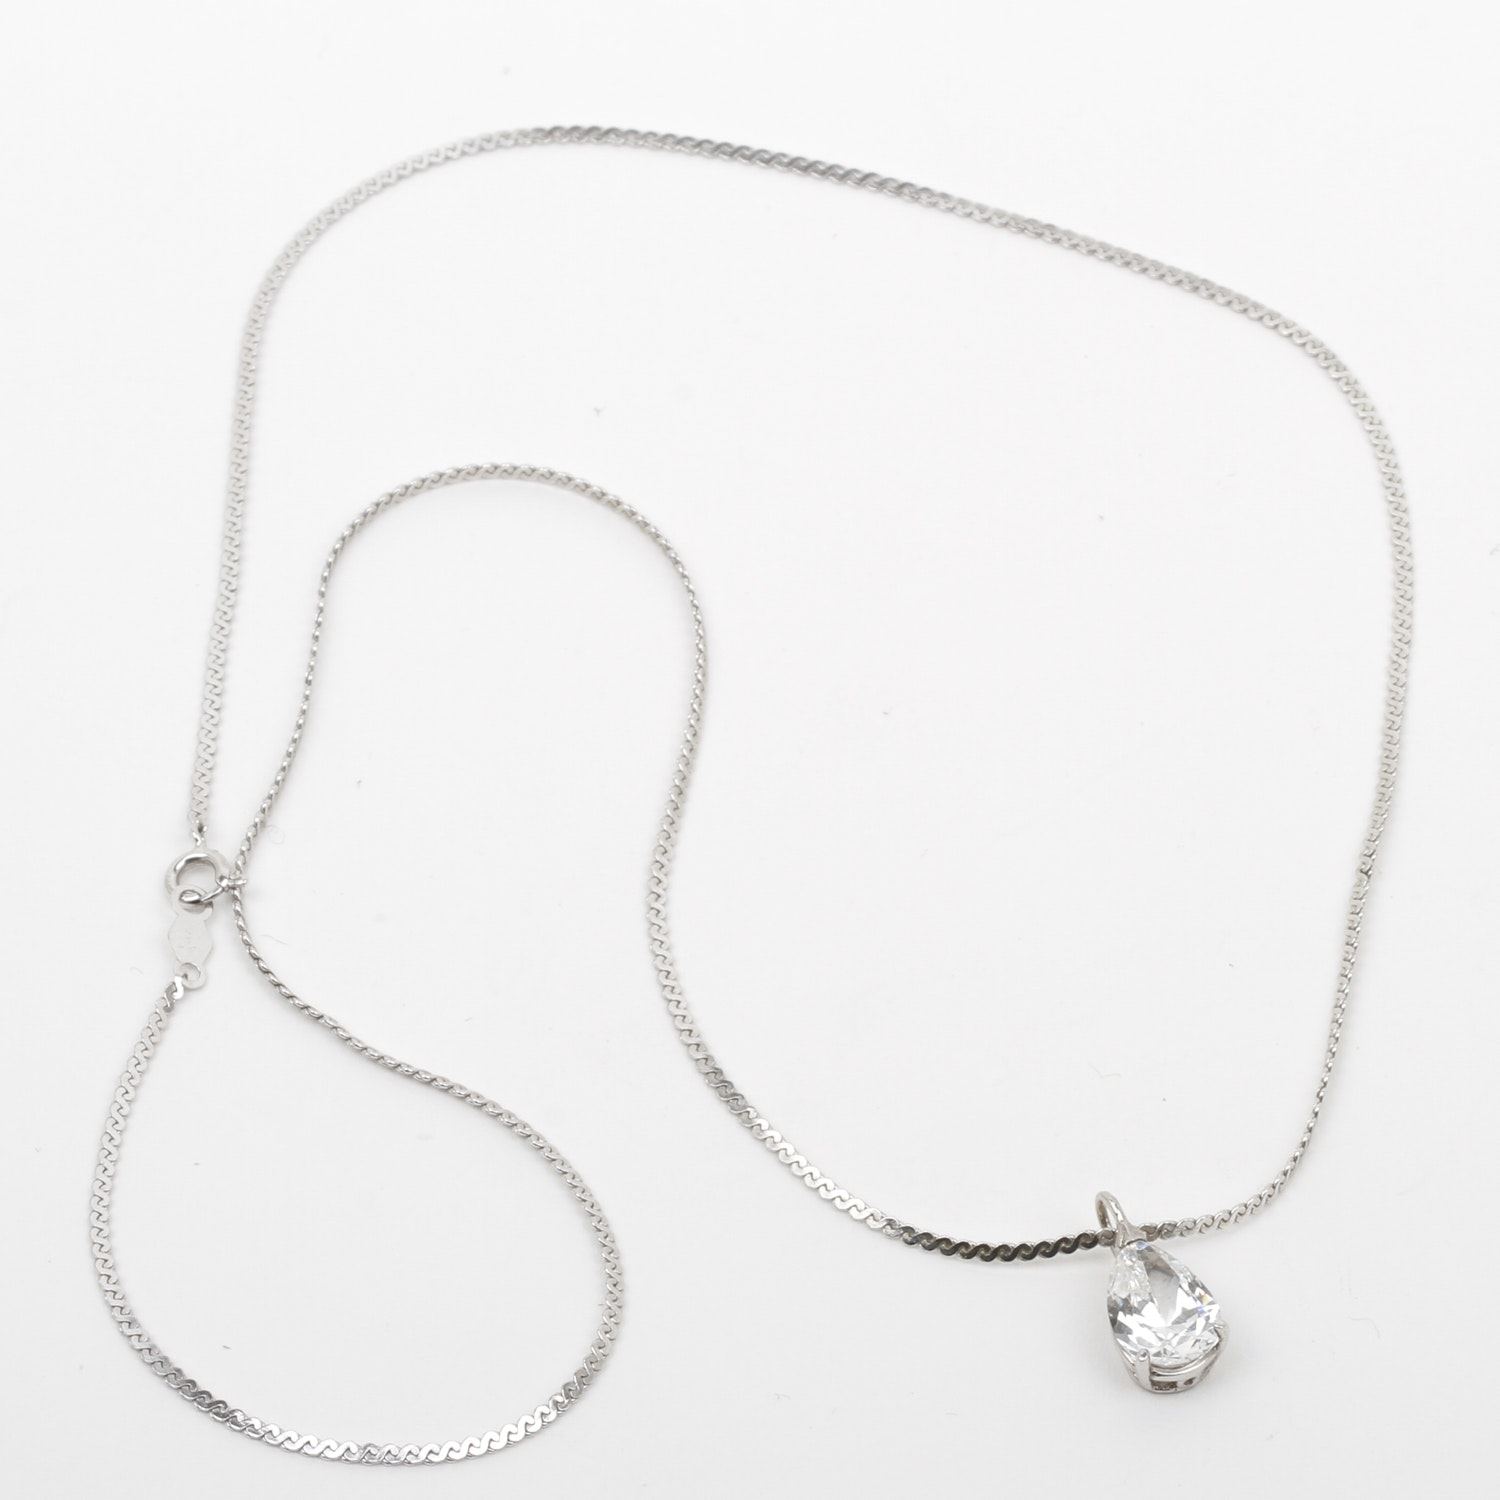 14K White Gold and White Spinel Pendant Necklace